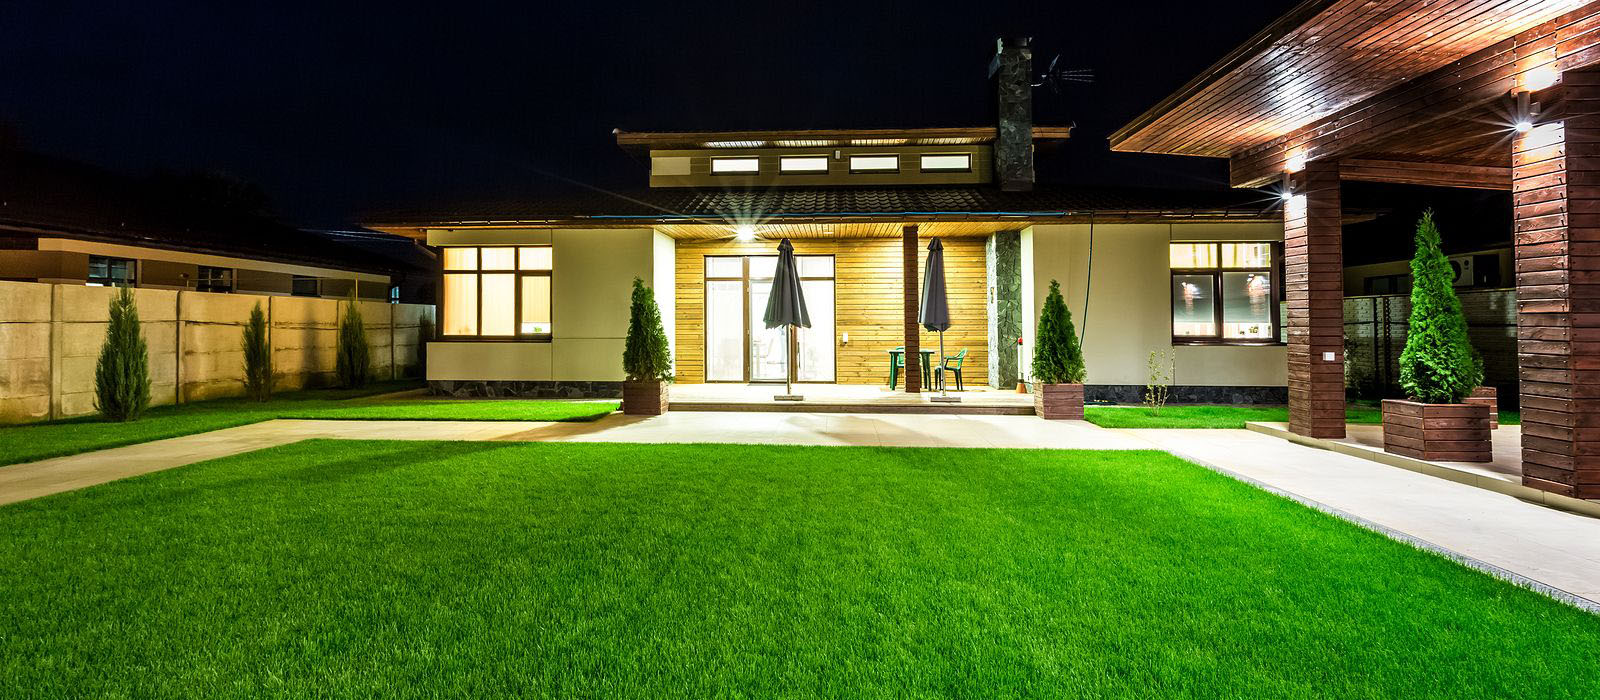 What Makes Artificial Turf So Compelling to Install in Homes